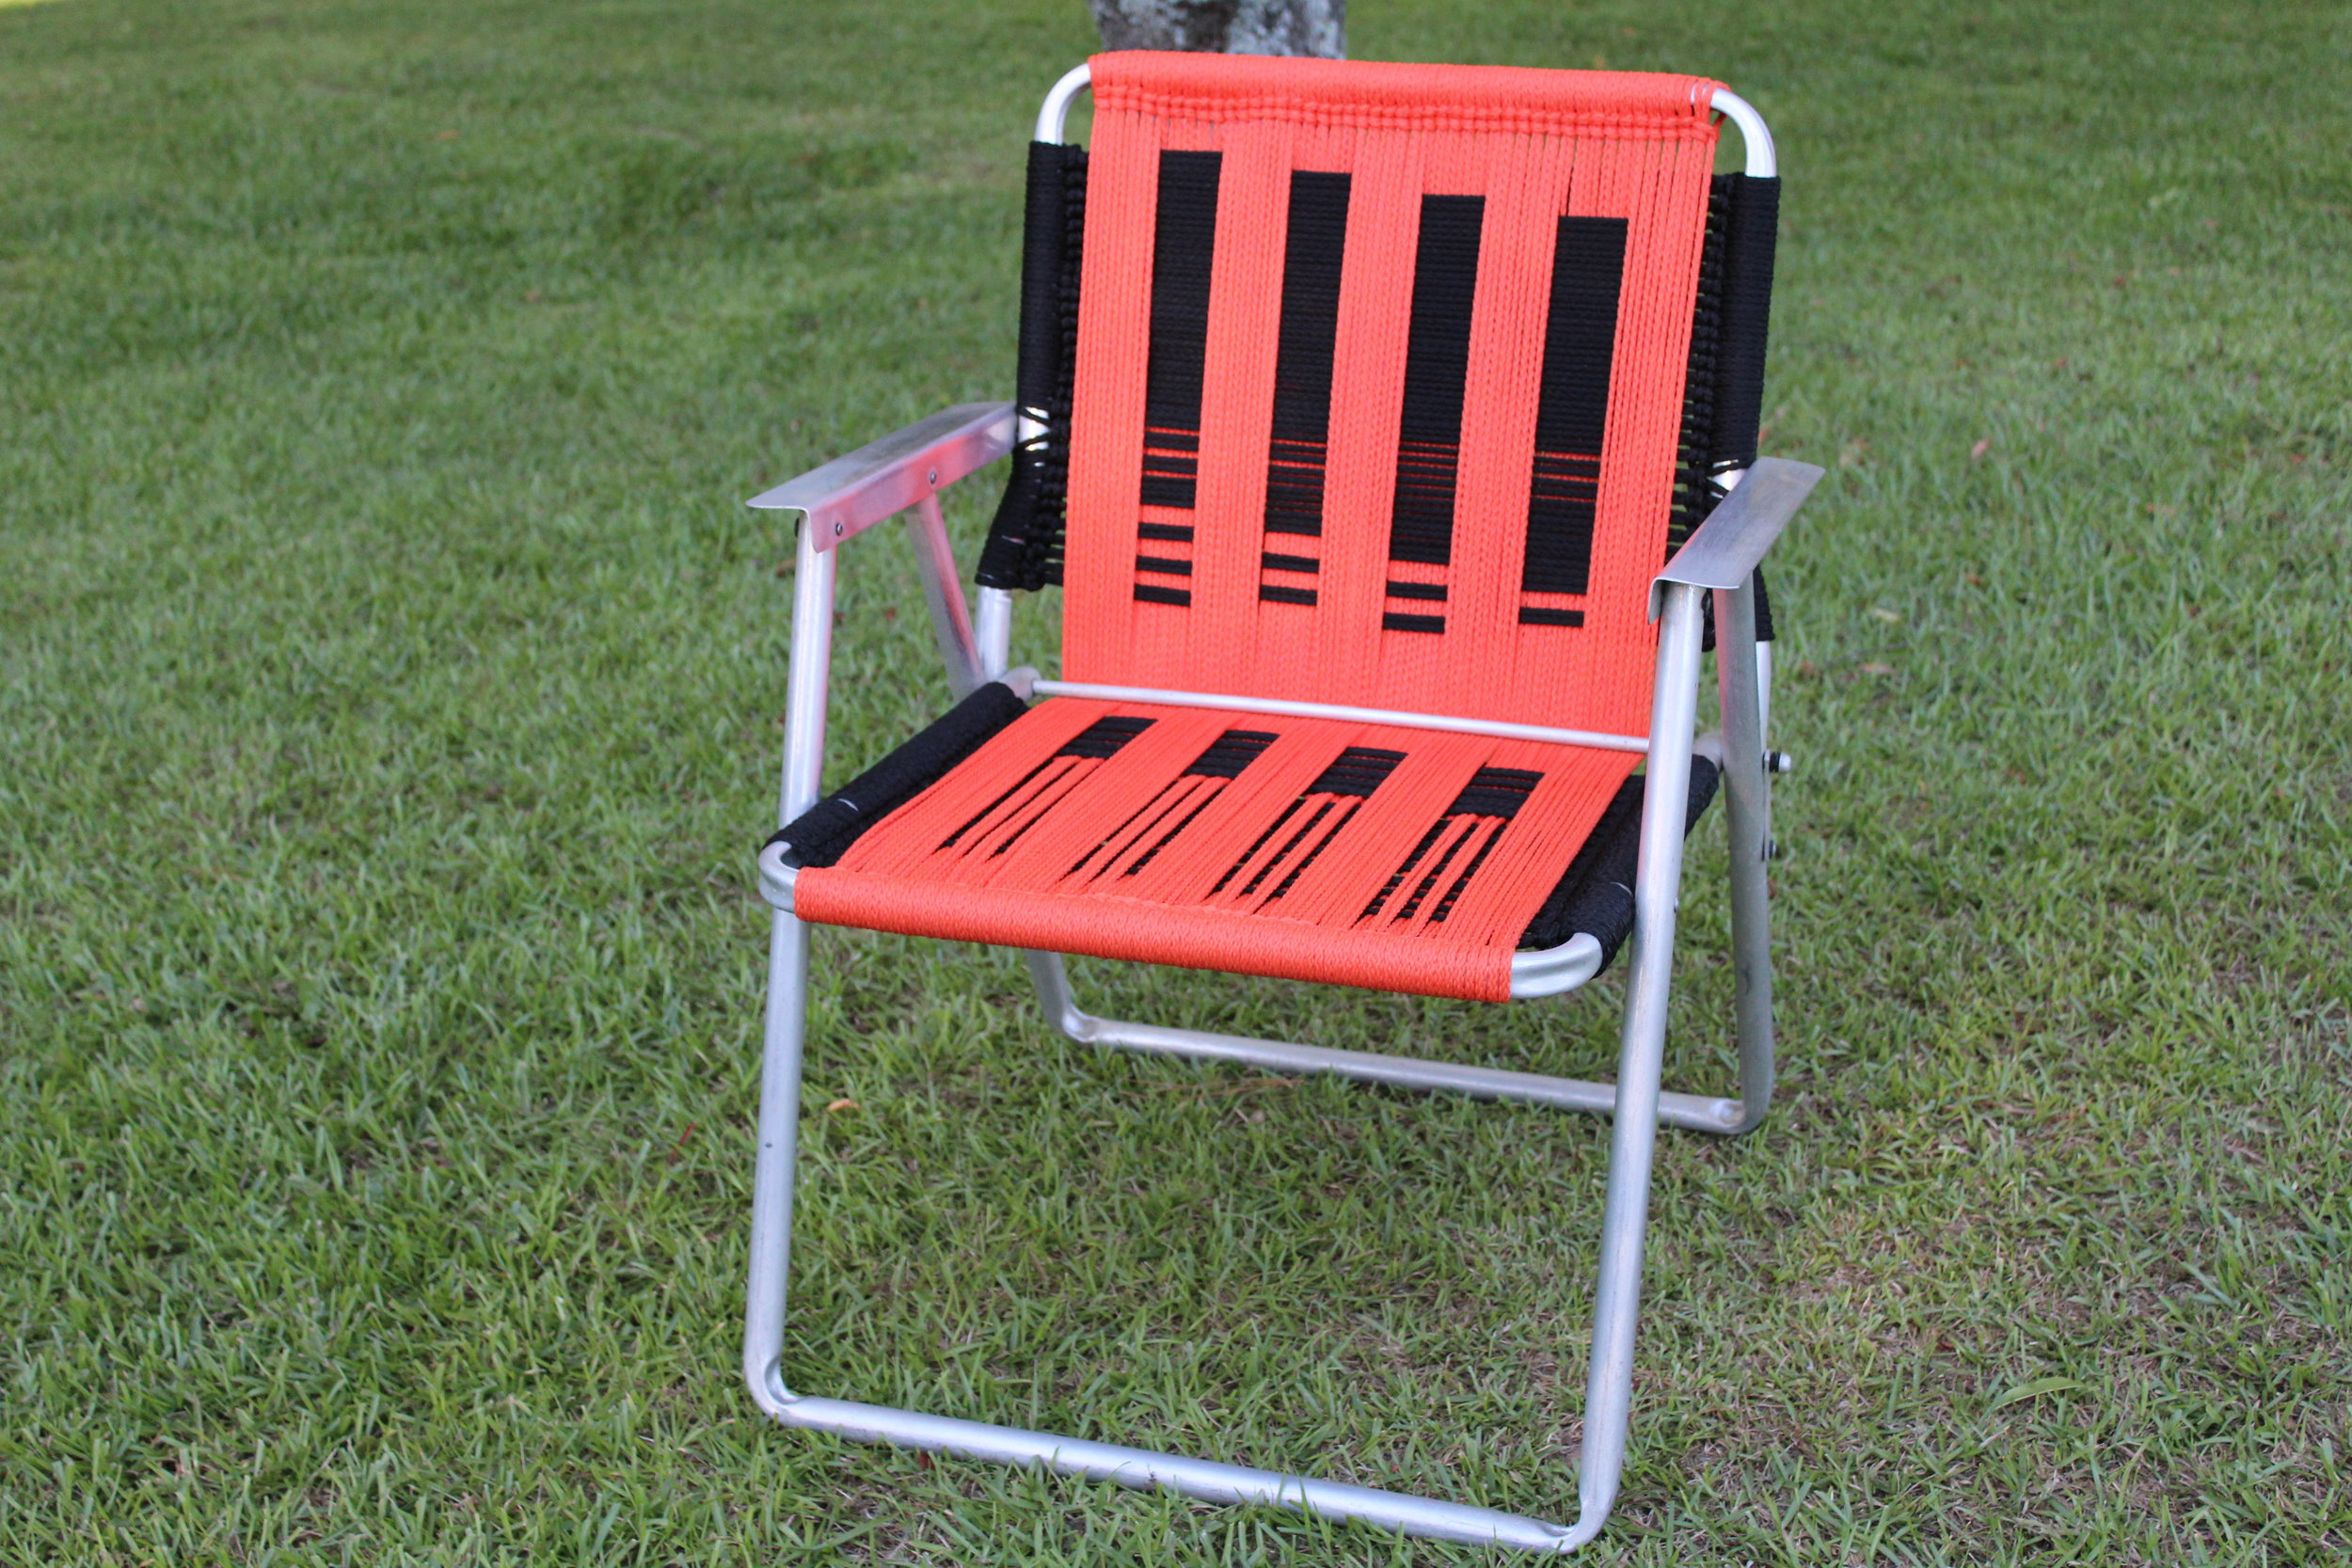 Aluminum Lawn Chair — Orange and Black cord; Custom Design —